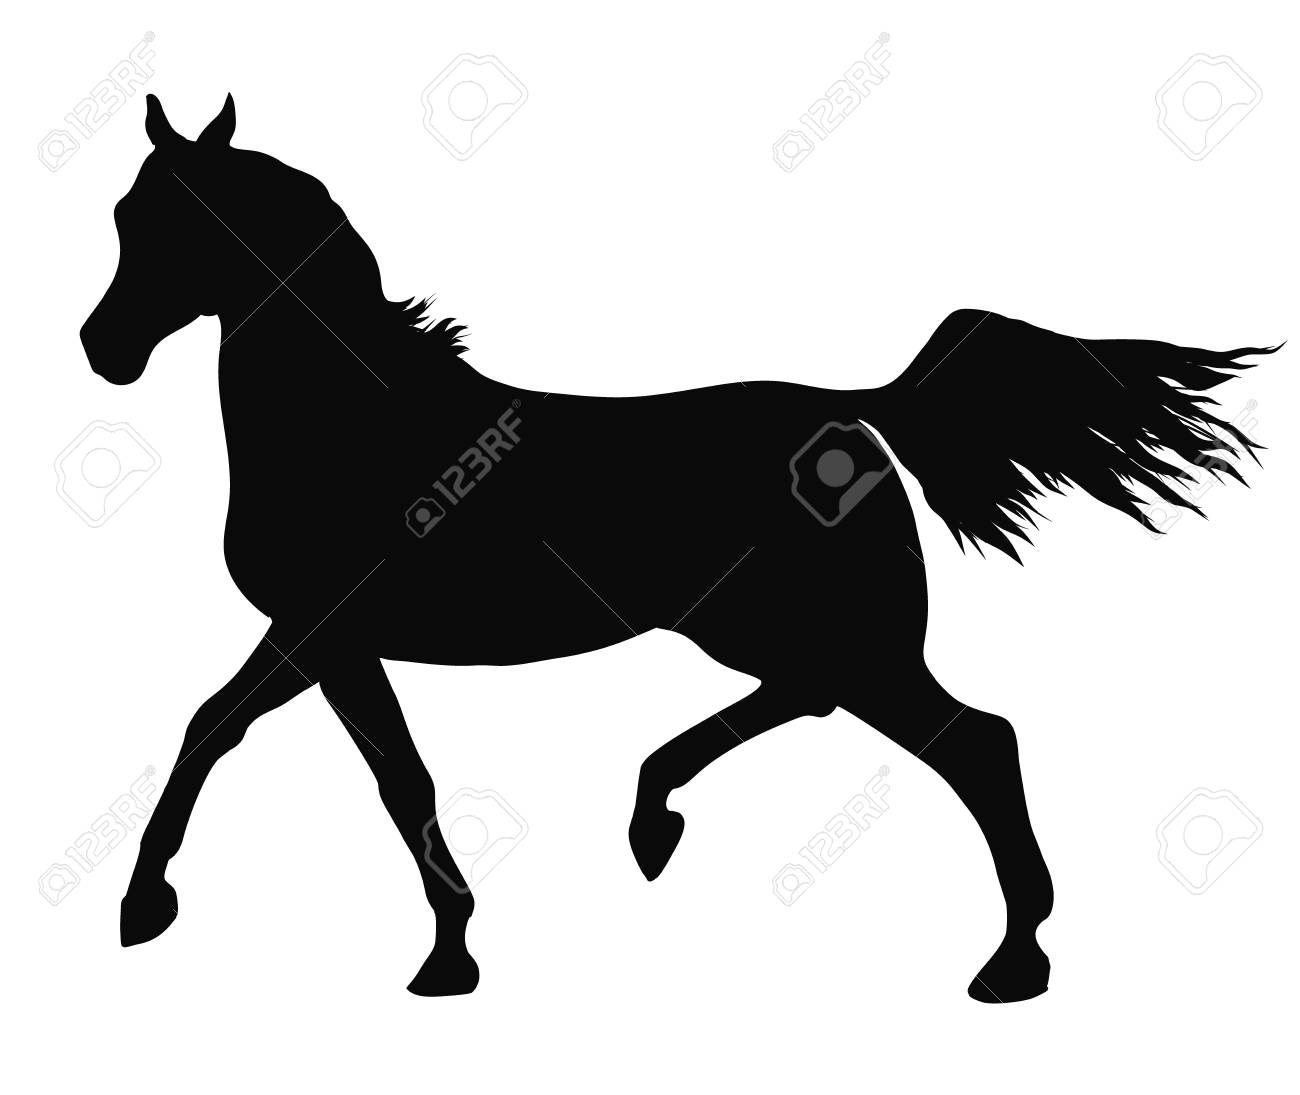 A Silhouette Of A Trotting Arabian Horse Royalty Free Cliparts Vectors And Stock Illustration Image 111997686